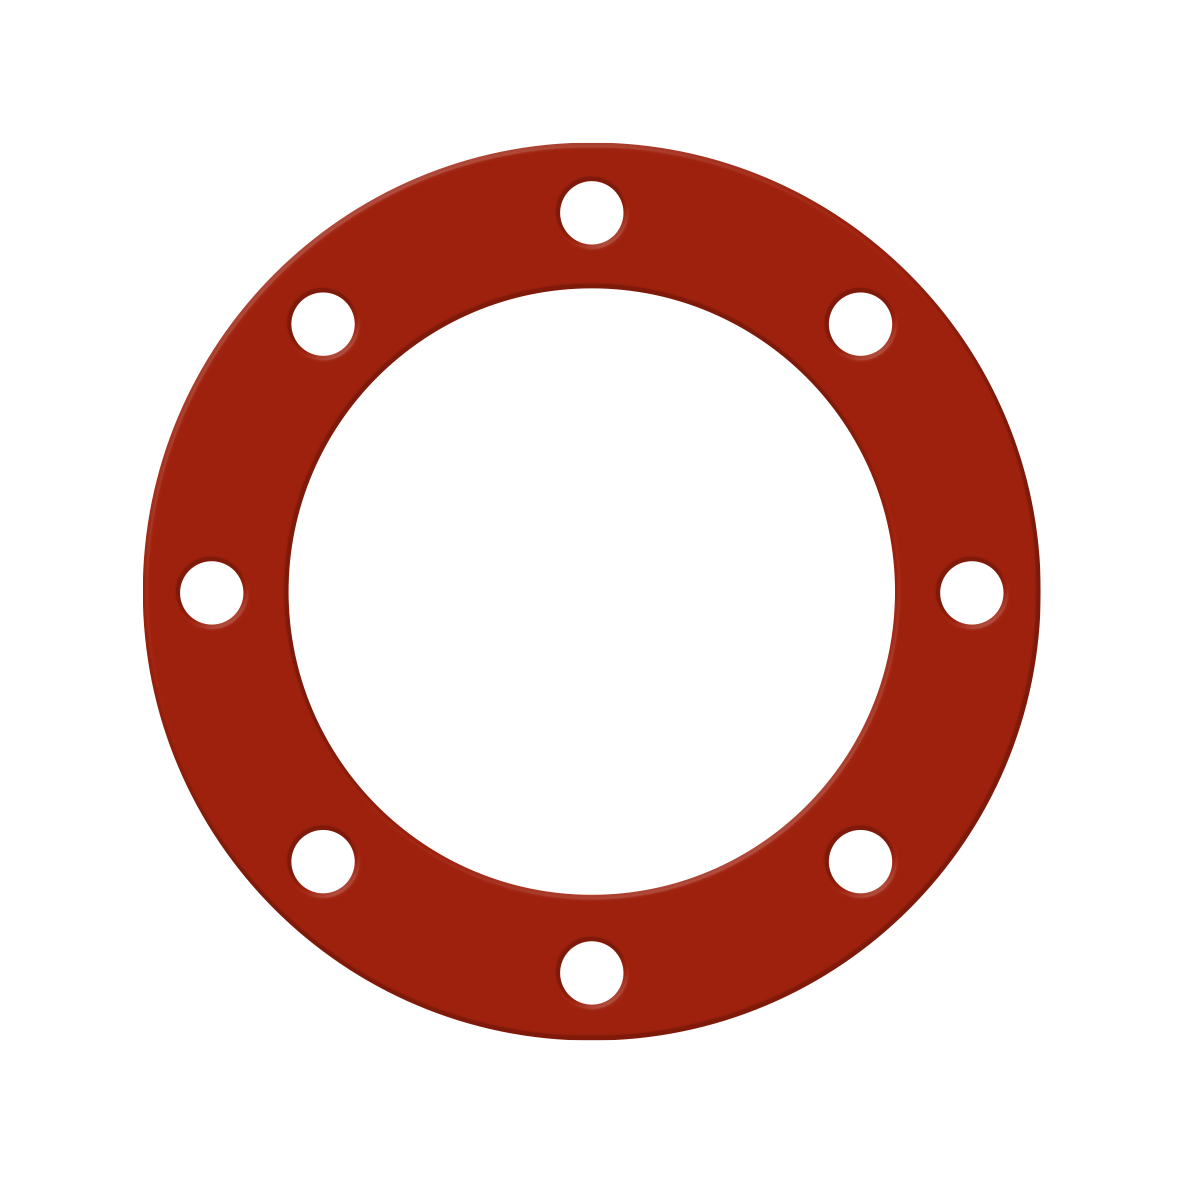 Thomson Red Rubber Gasket